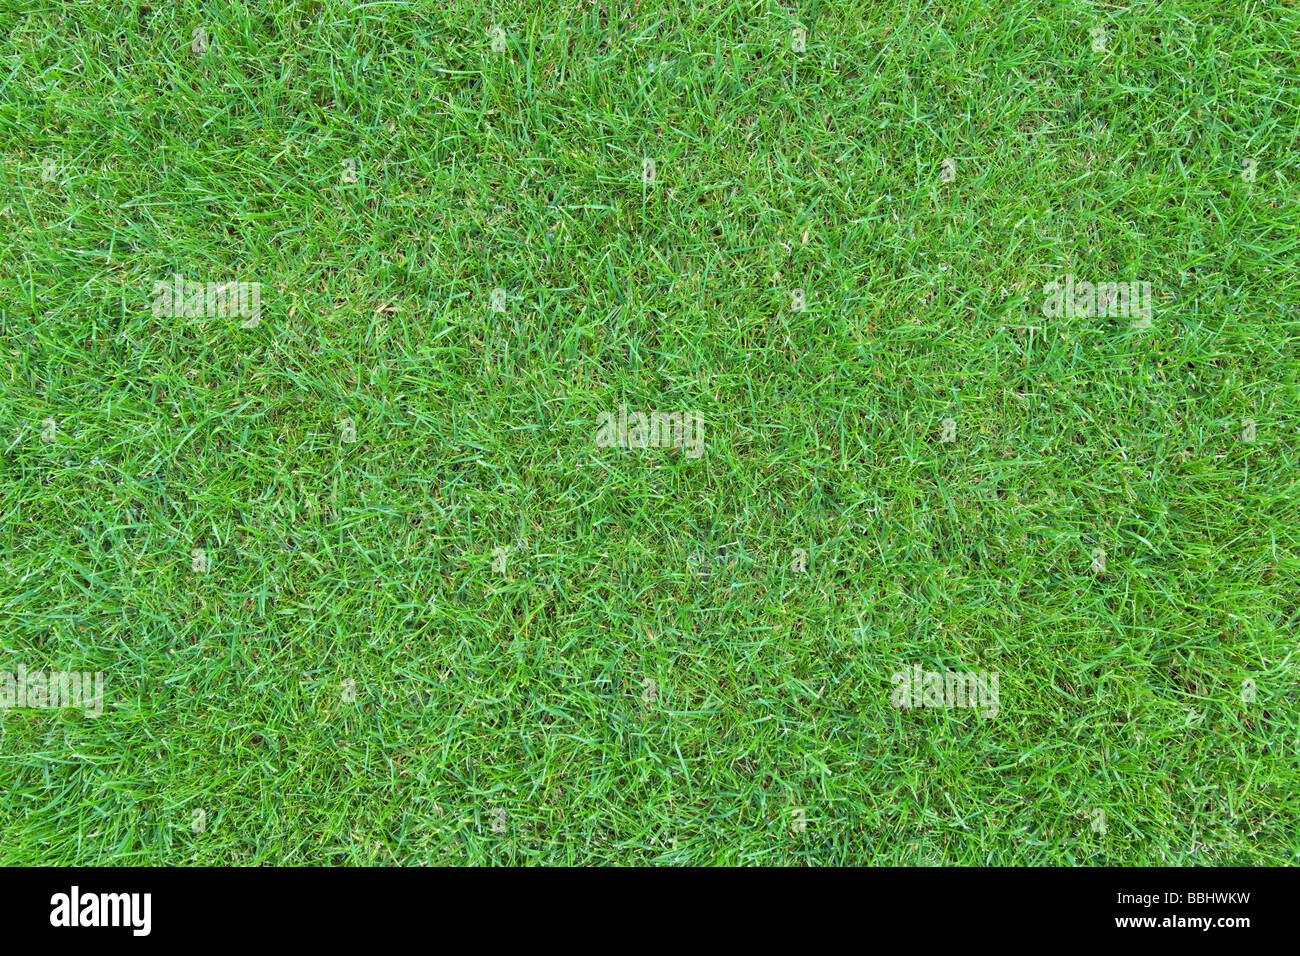 Green grass lawn top view - Stock Image